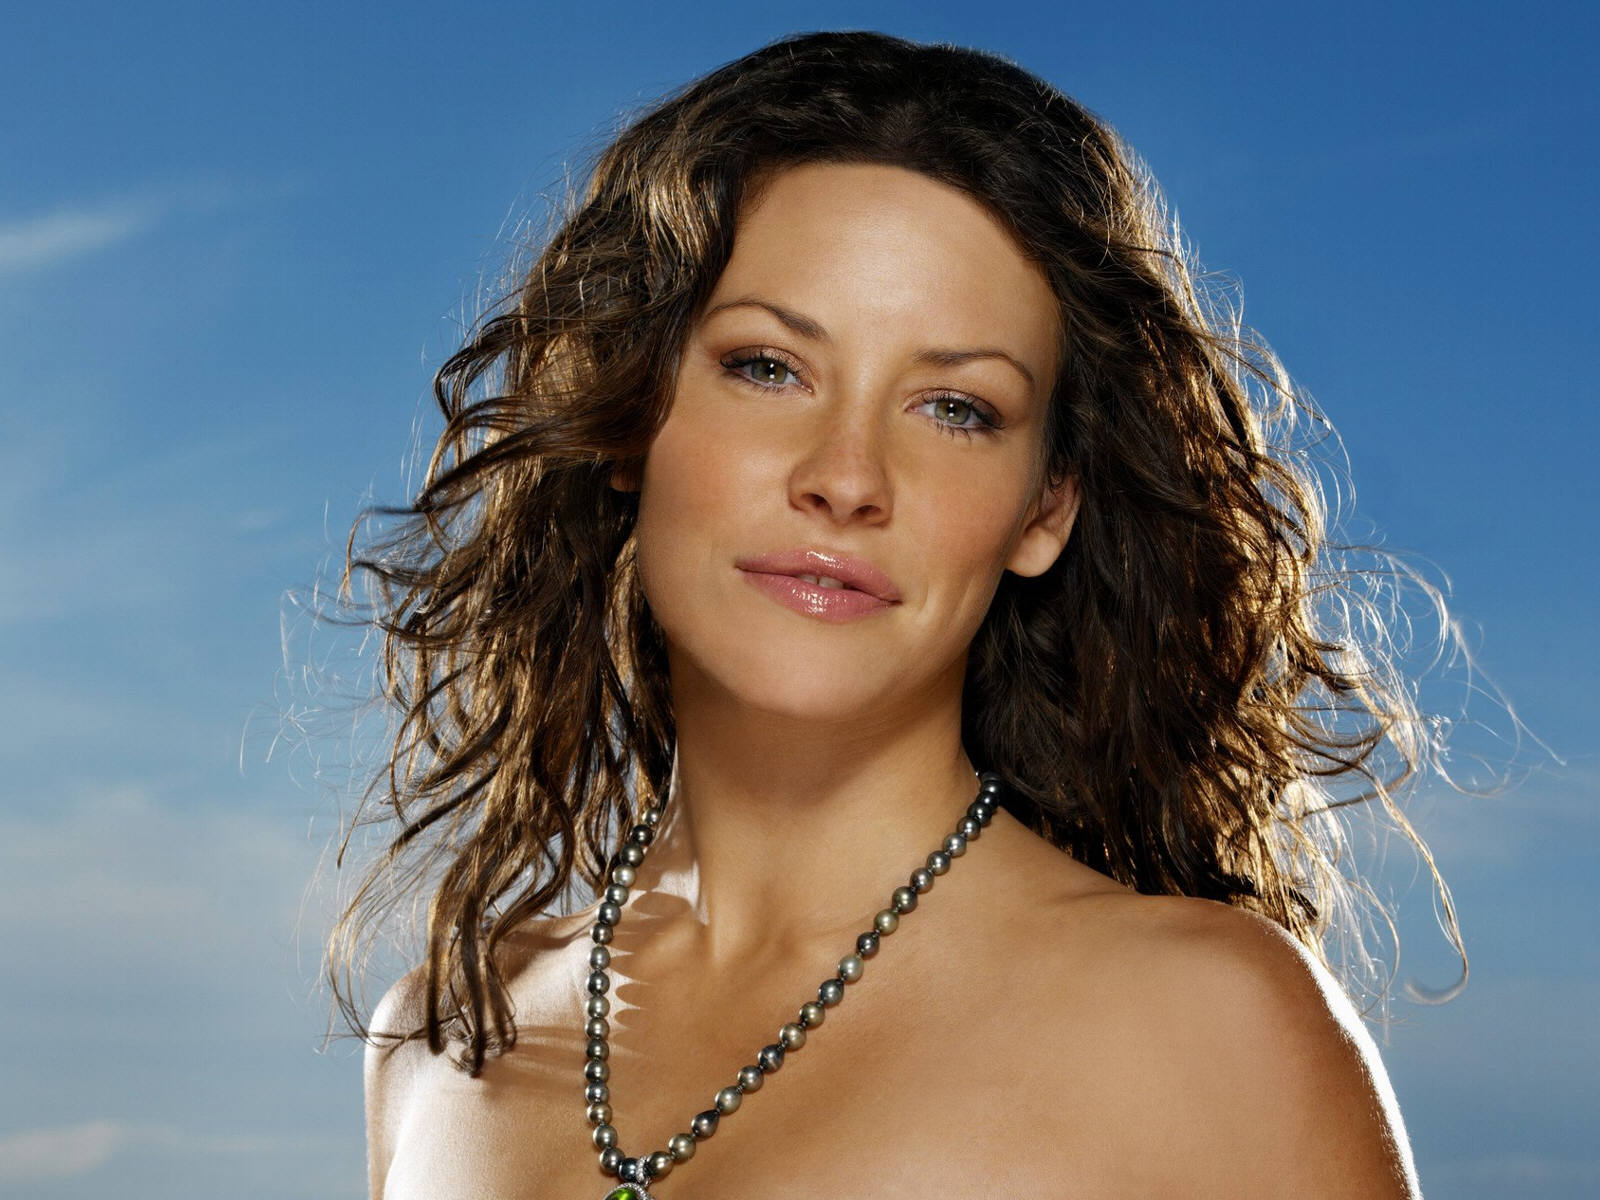 Evangeline Lilly pictures Raveena Tandon pictures Evangeline Lilly 1600x1200